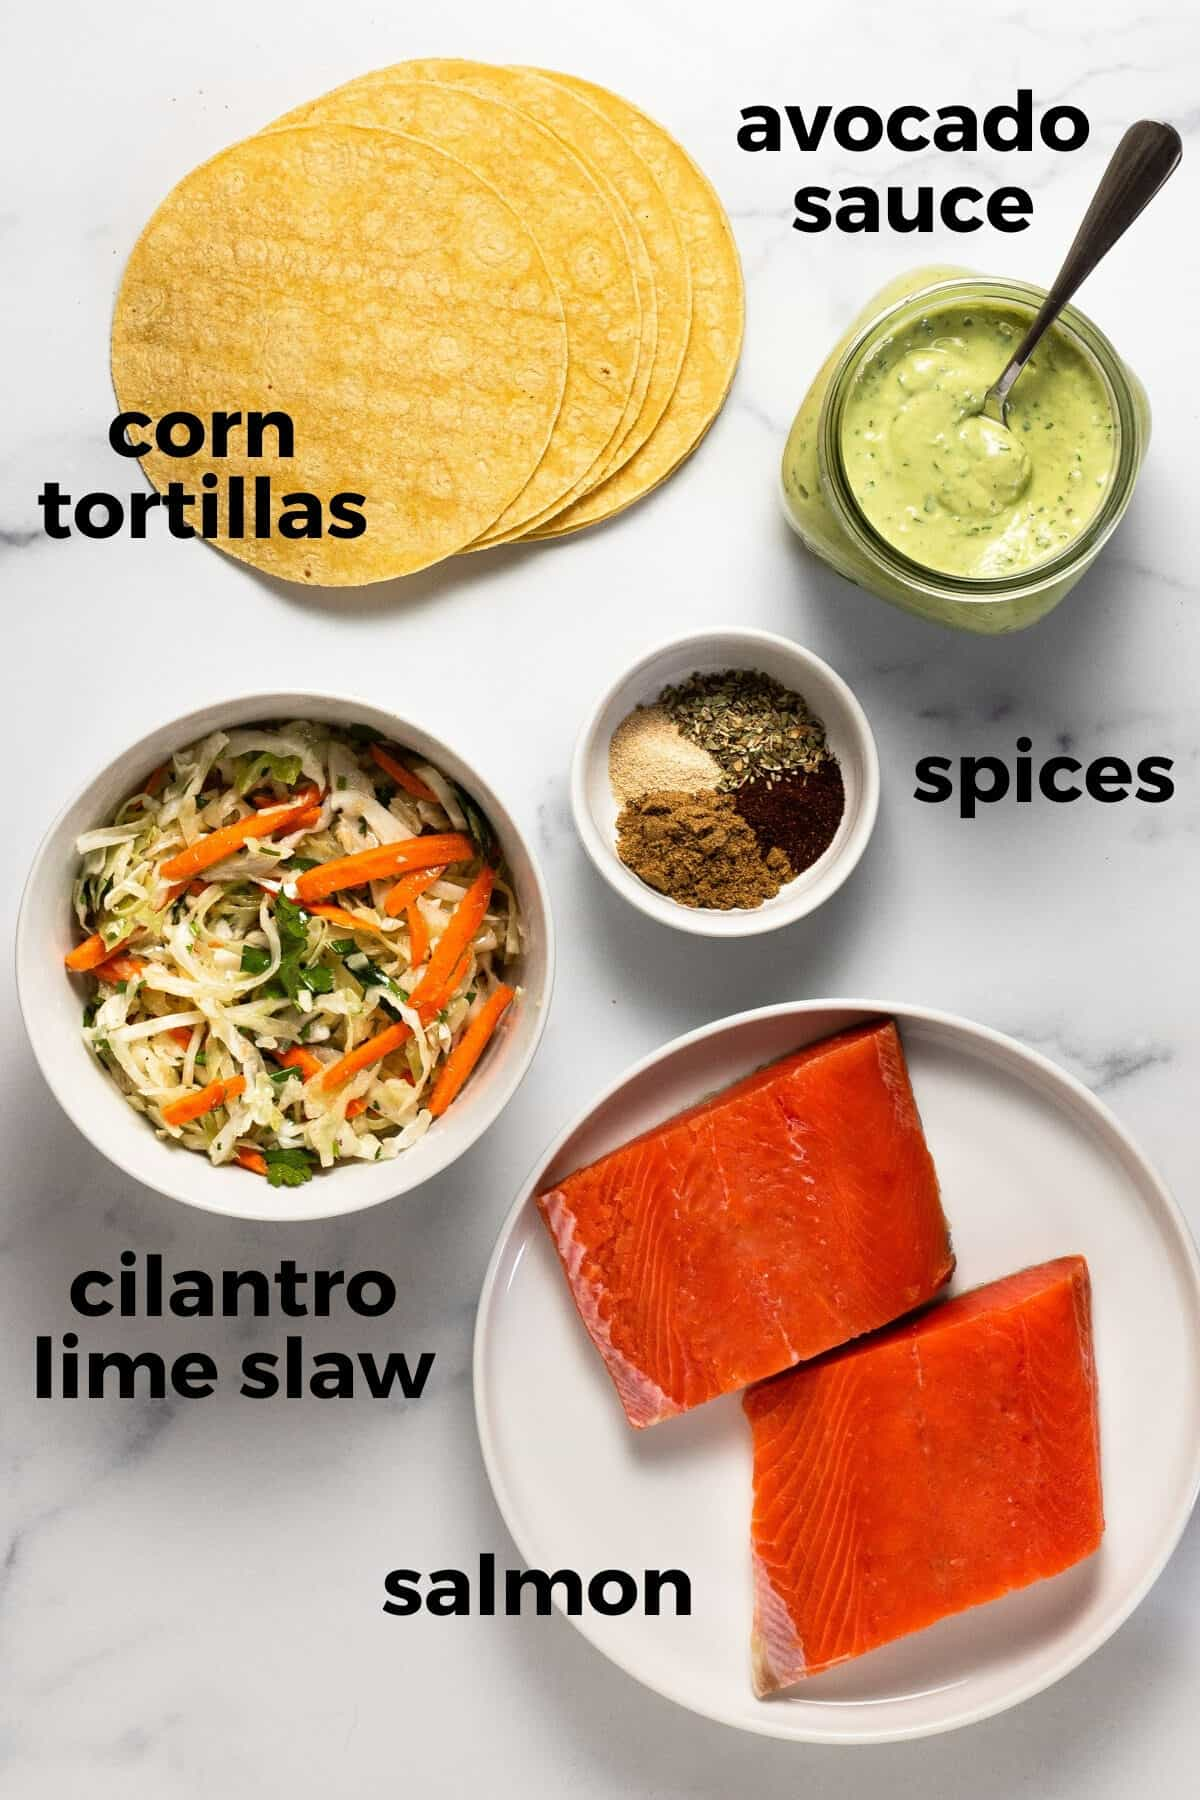 White marble counter top with ingredients to make a salmon taco recipe